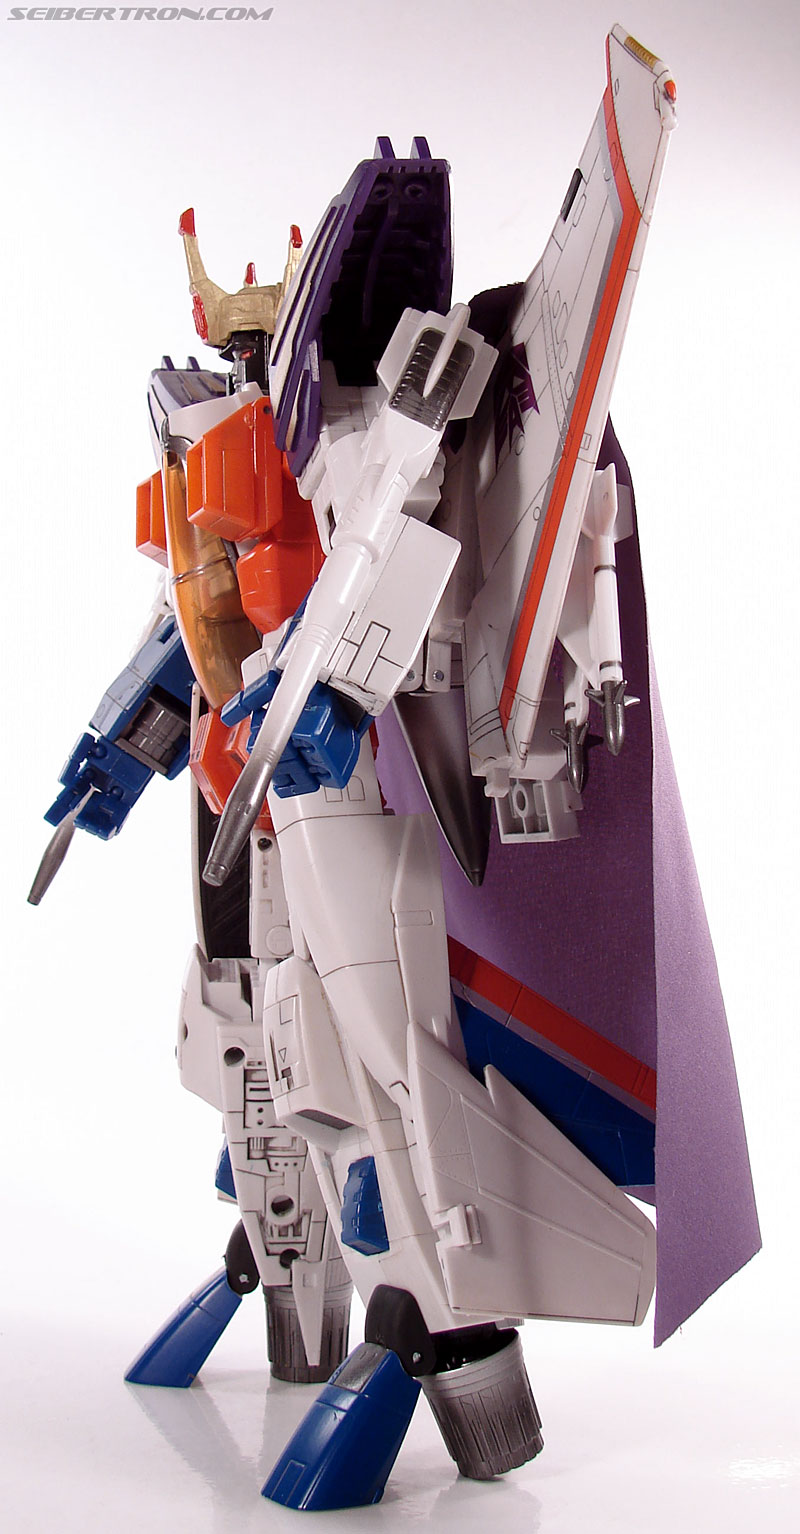 Transformers Masterpiece Starscream (Image #13 of 62)